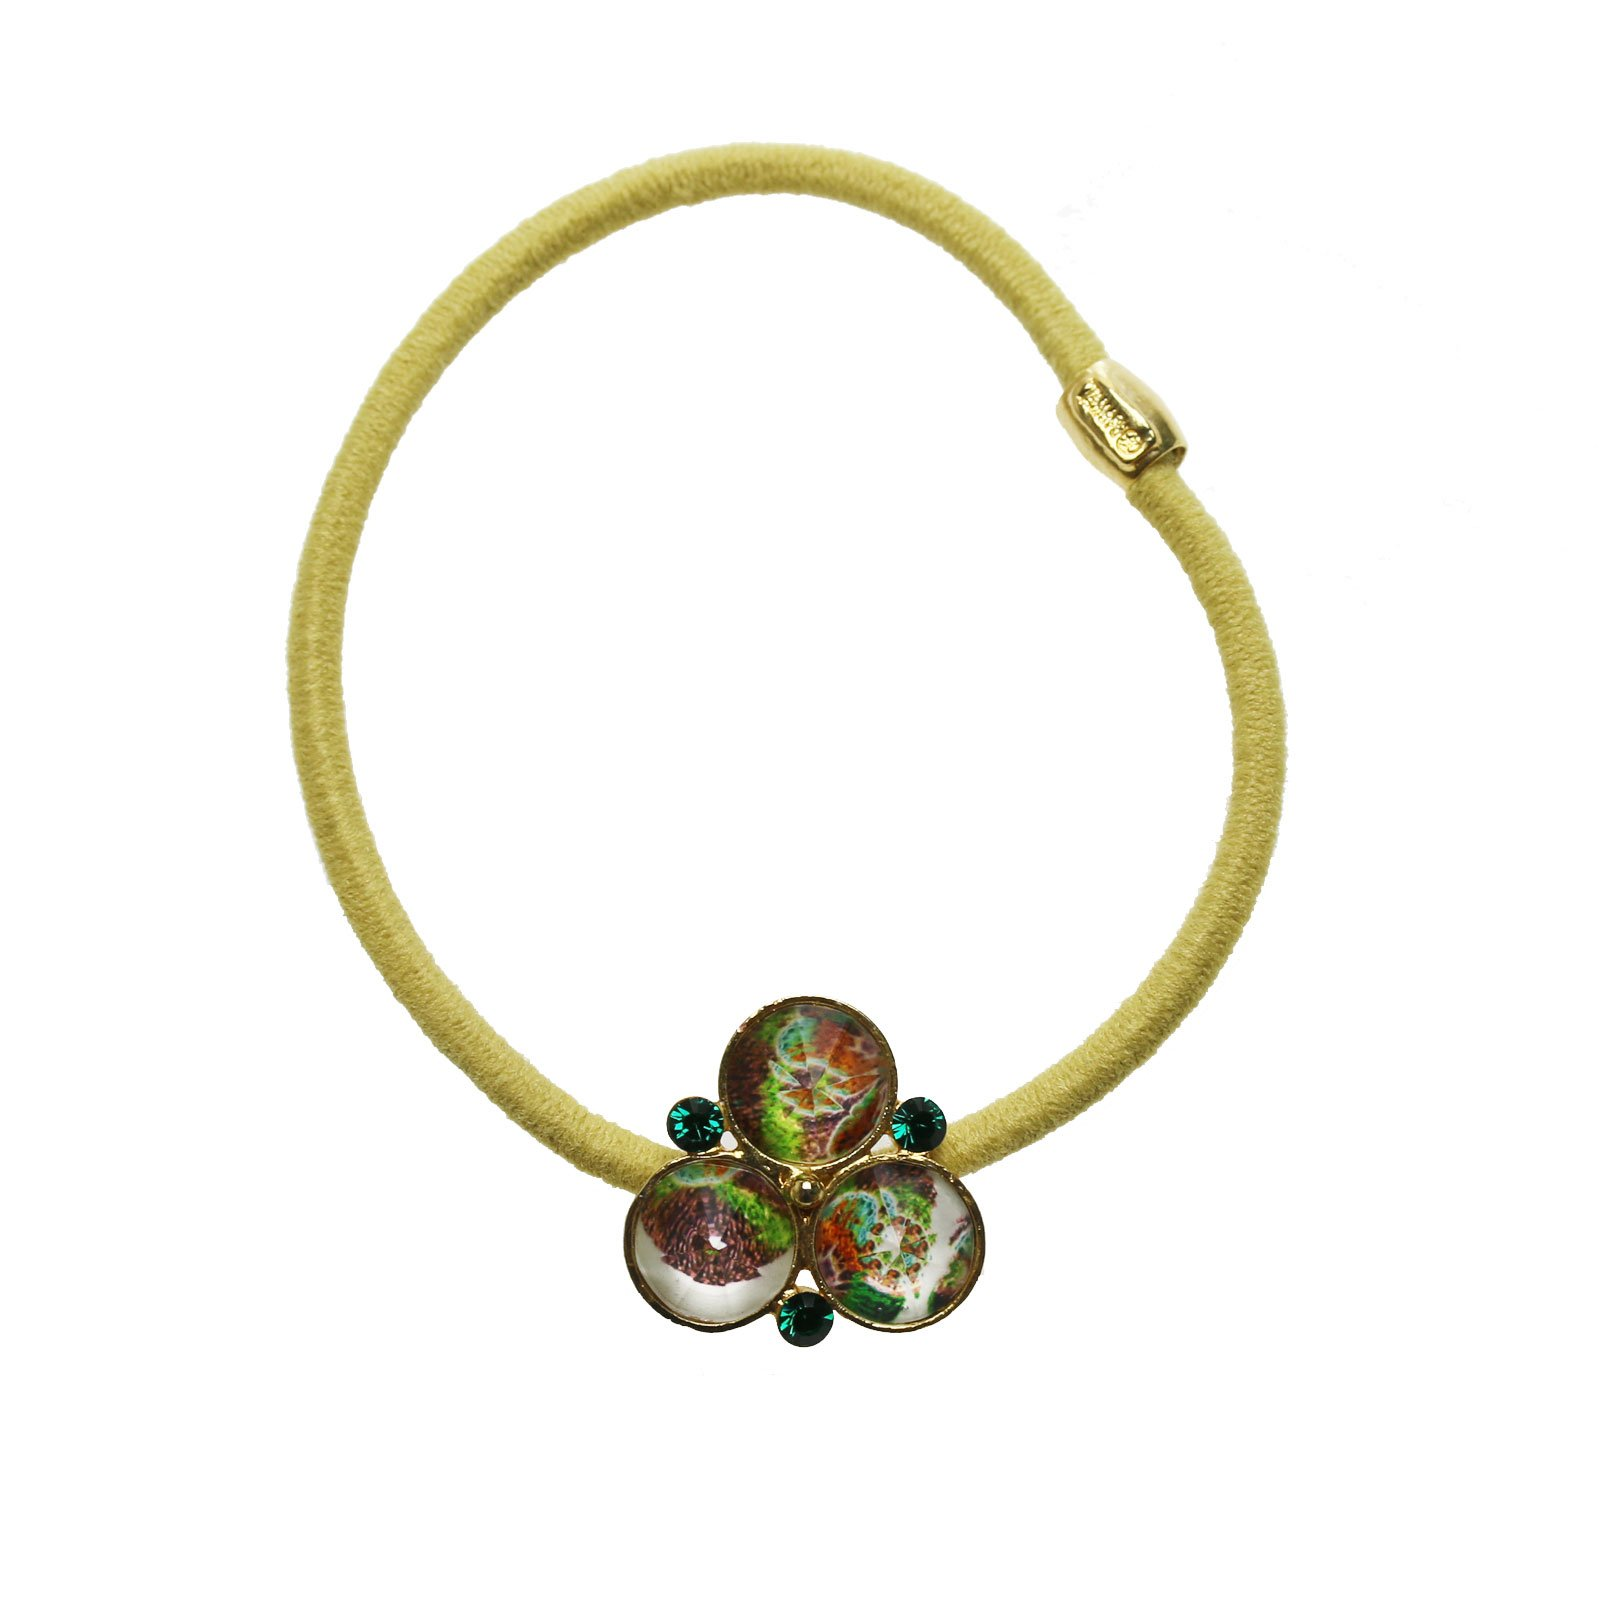 Tamarusan Ponytail Holder Small Size Pansy Yellow Green Unisex High-Grade